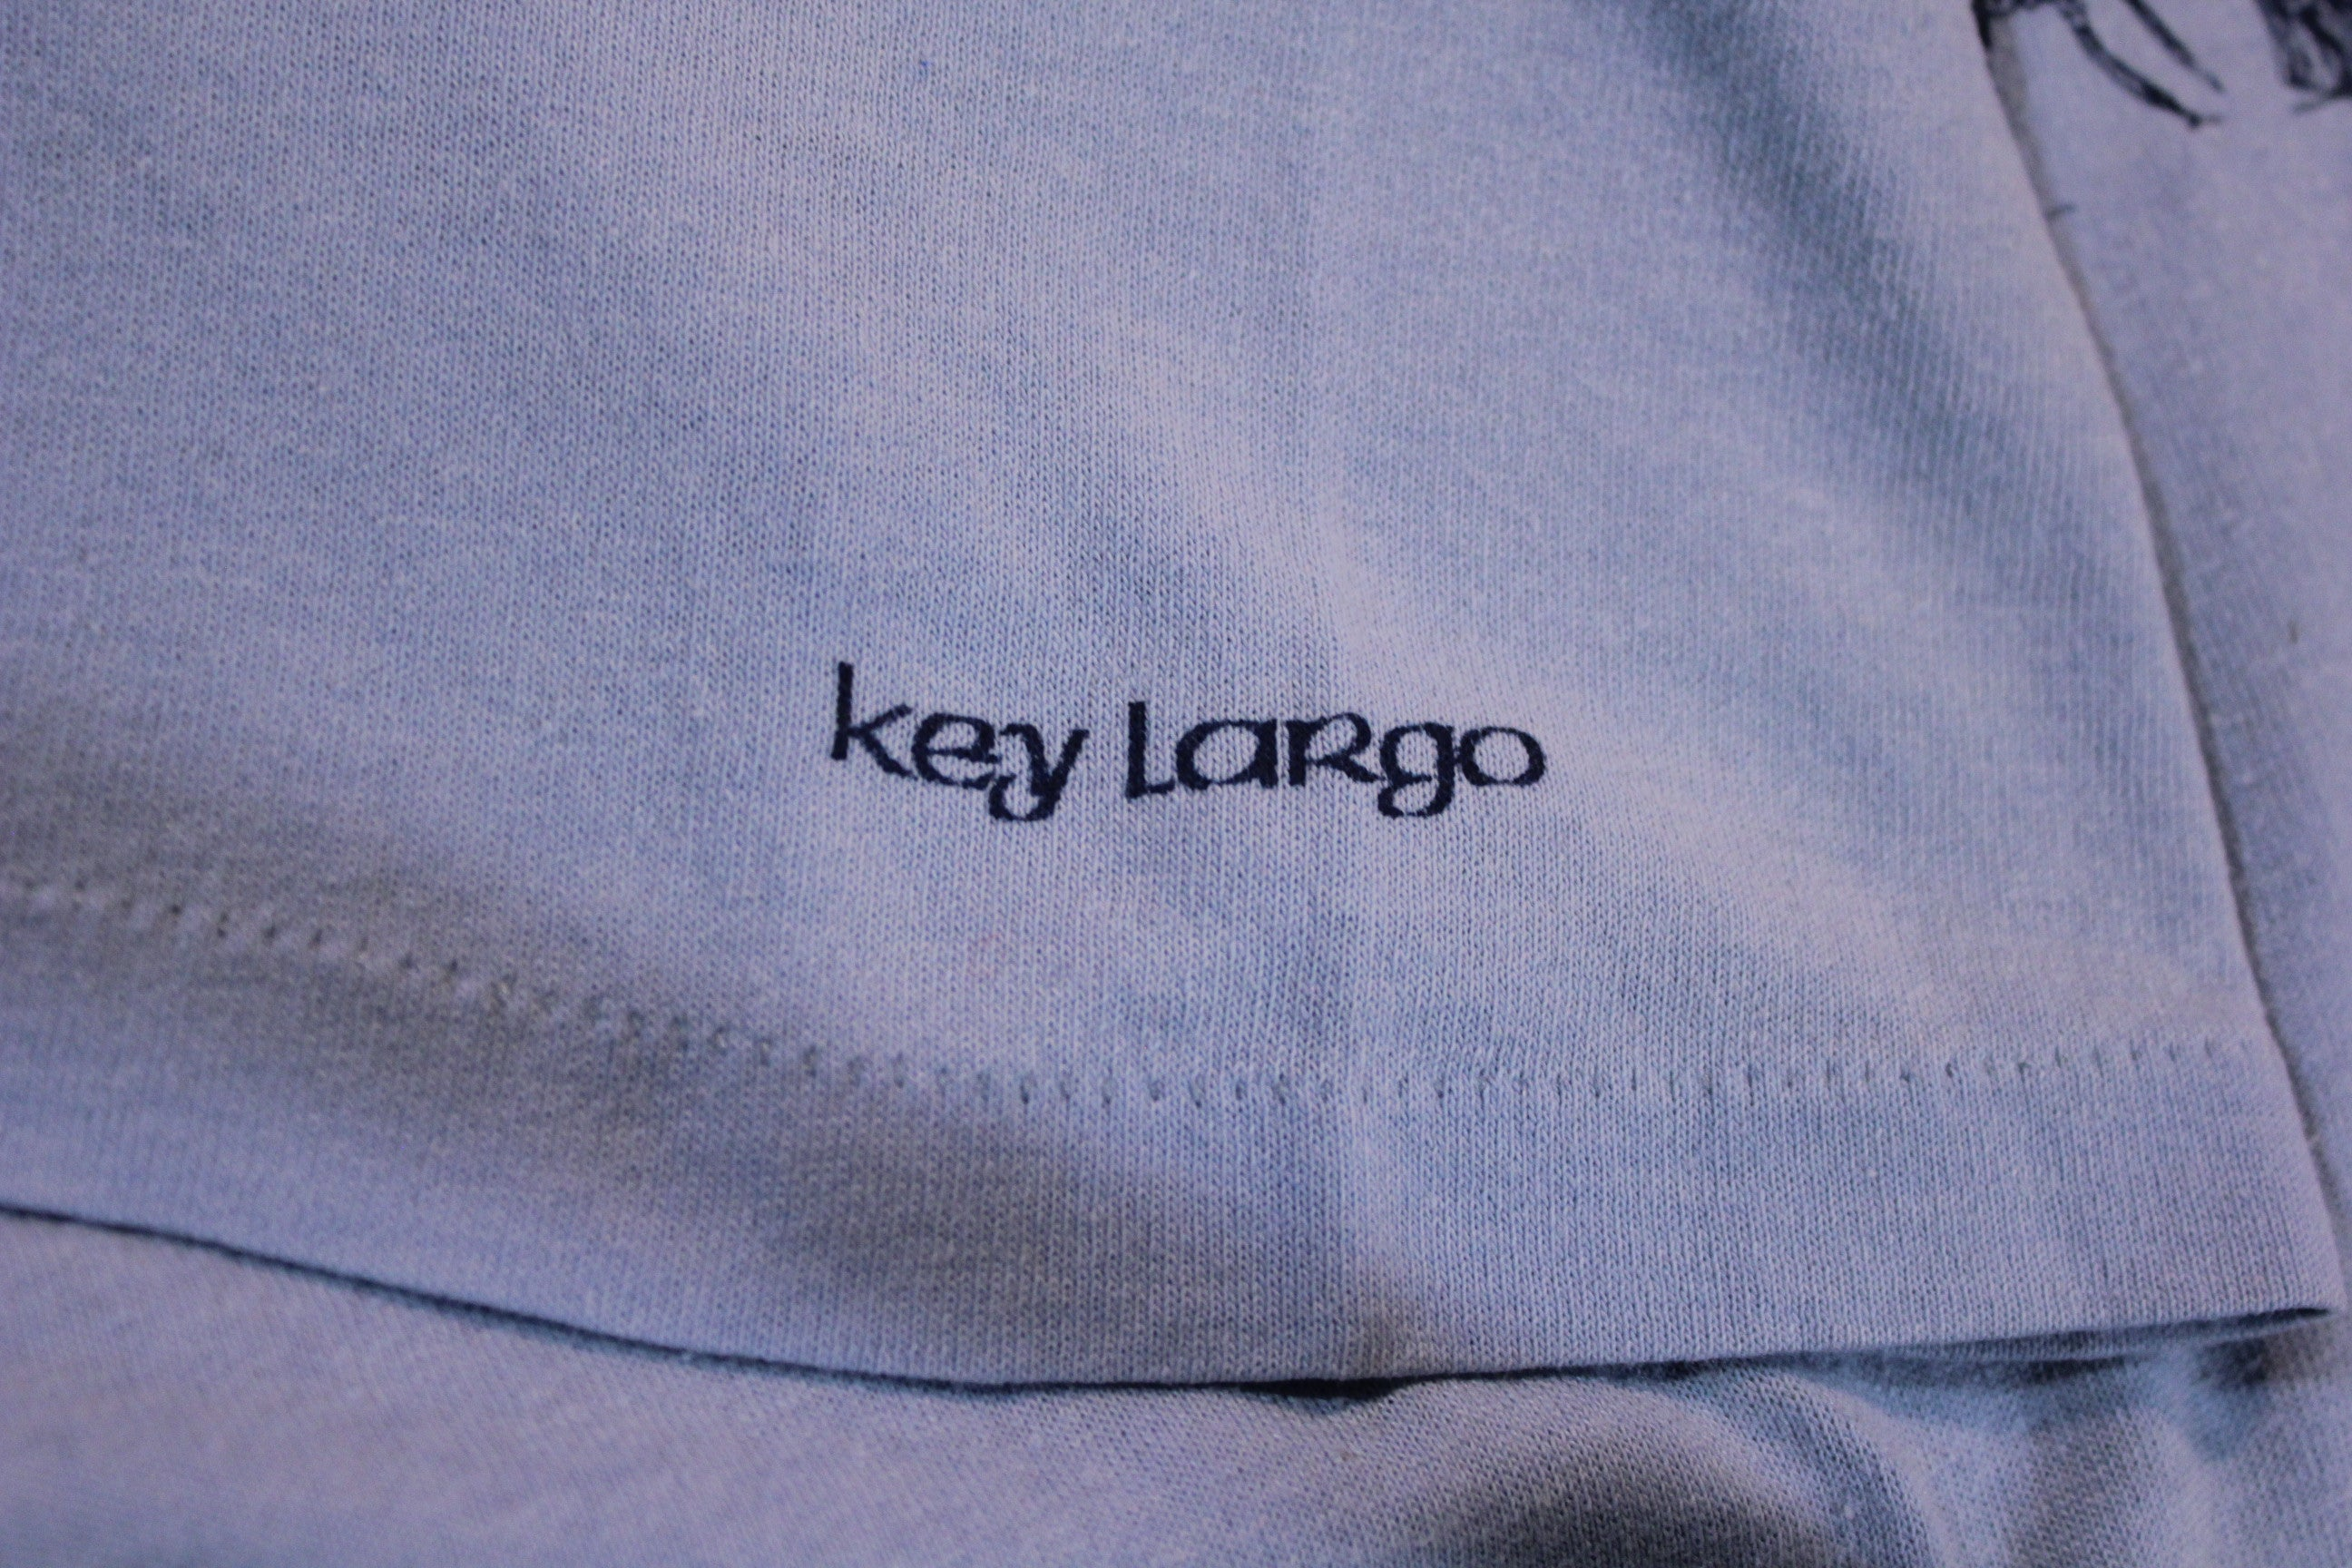 Key Largo Oh Shit 80's Vintage T-Shirt Cotton Blend Jerzees Medium 1985 Lobsters